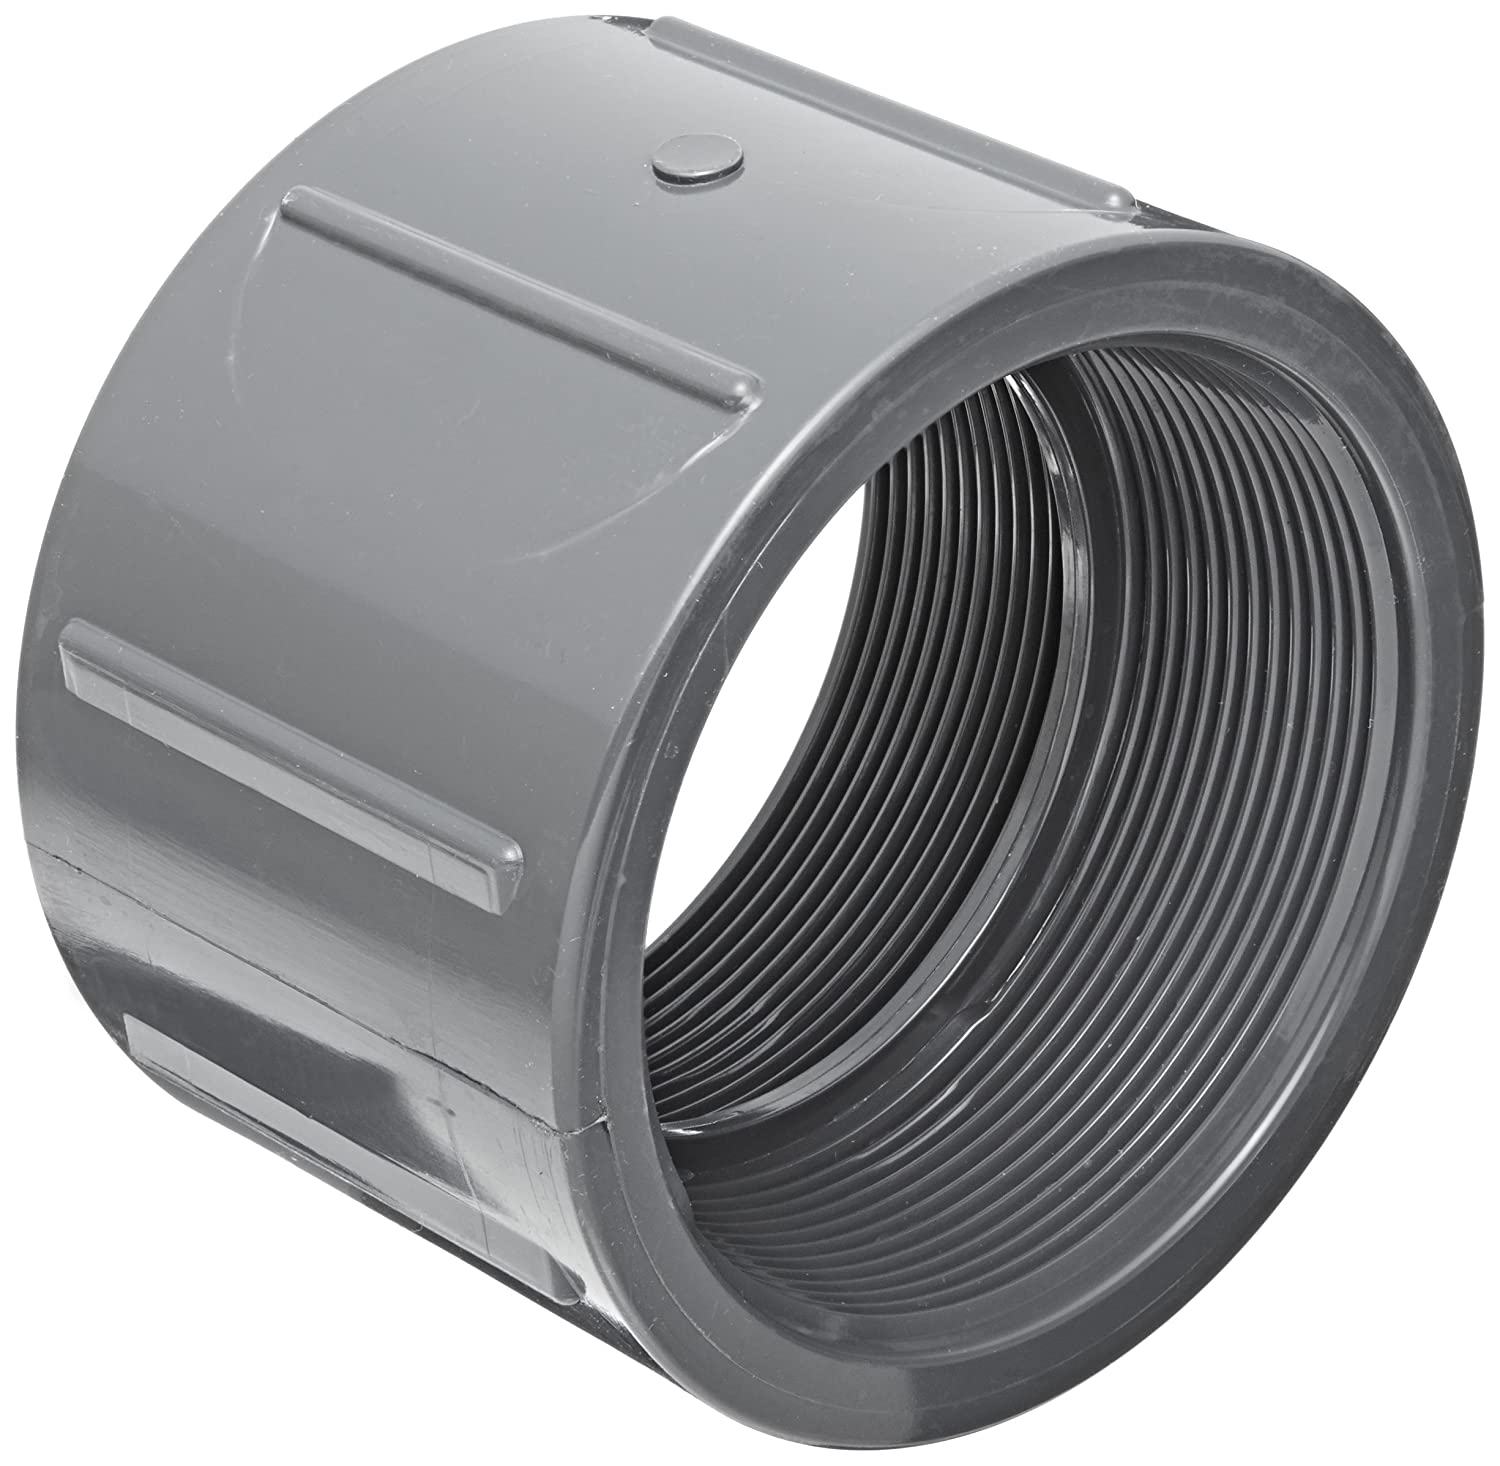 Spears 830 Series PVC Pipe Fitting 2 NPT Female 2 NPT Female Spears Manufacturing 830-020 Coupling Schedule 80